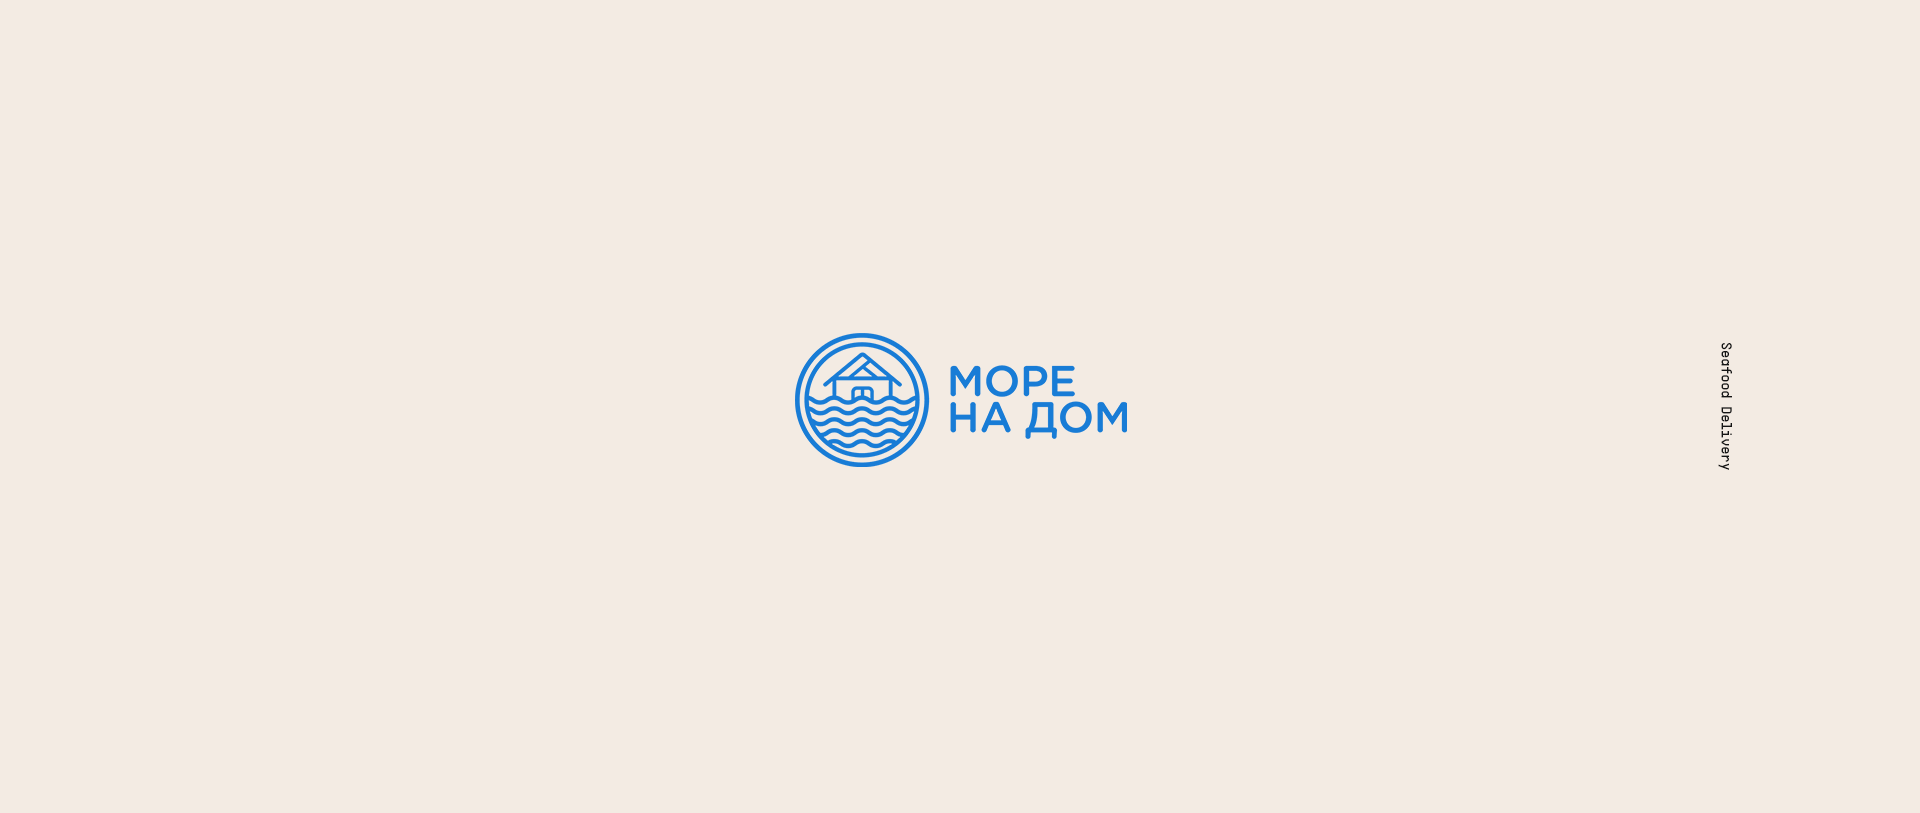 Designer creates 50 free logos for clients, working non-stop for 32 hours - 23